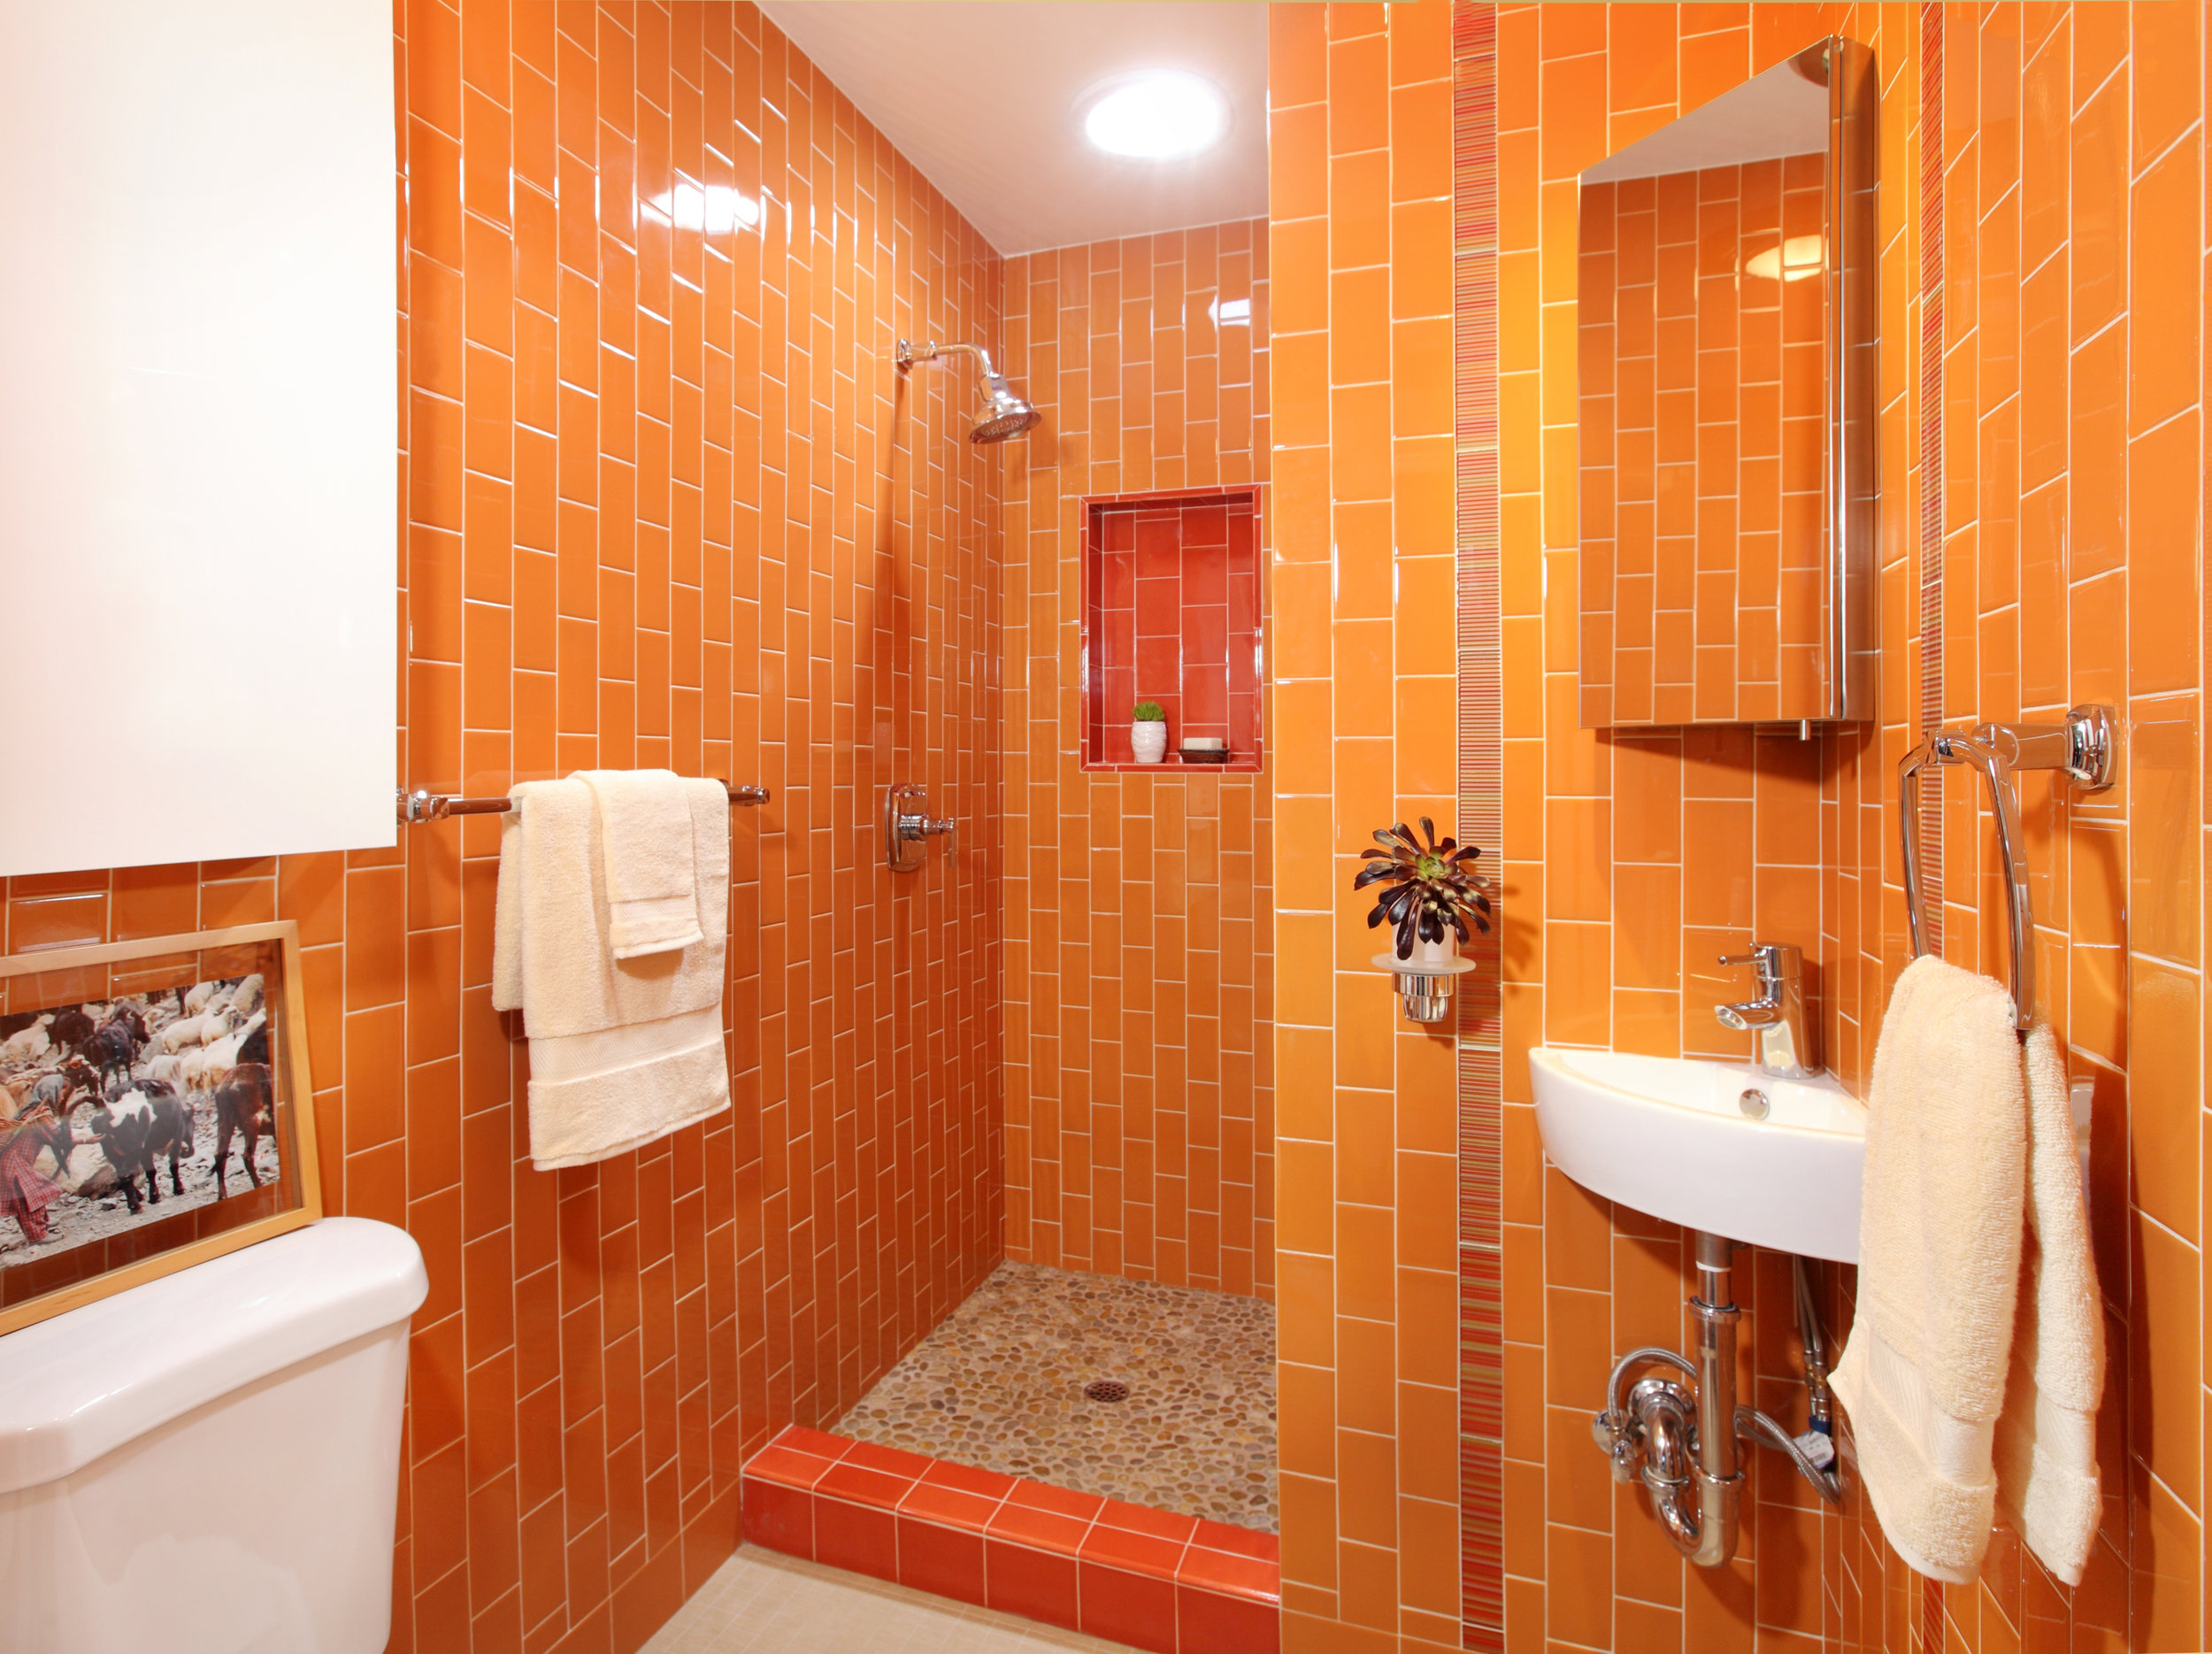 Sarah-barnard-design-modern-orange-bathroom.jpg